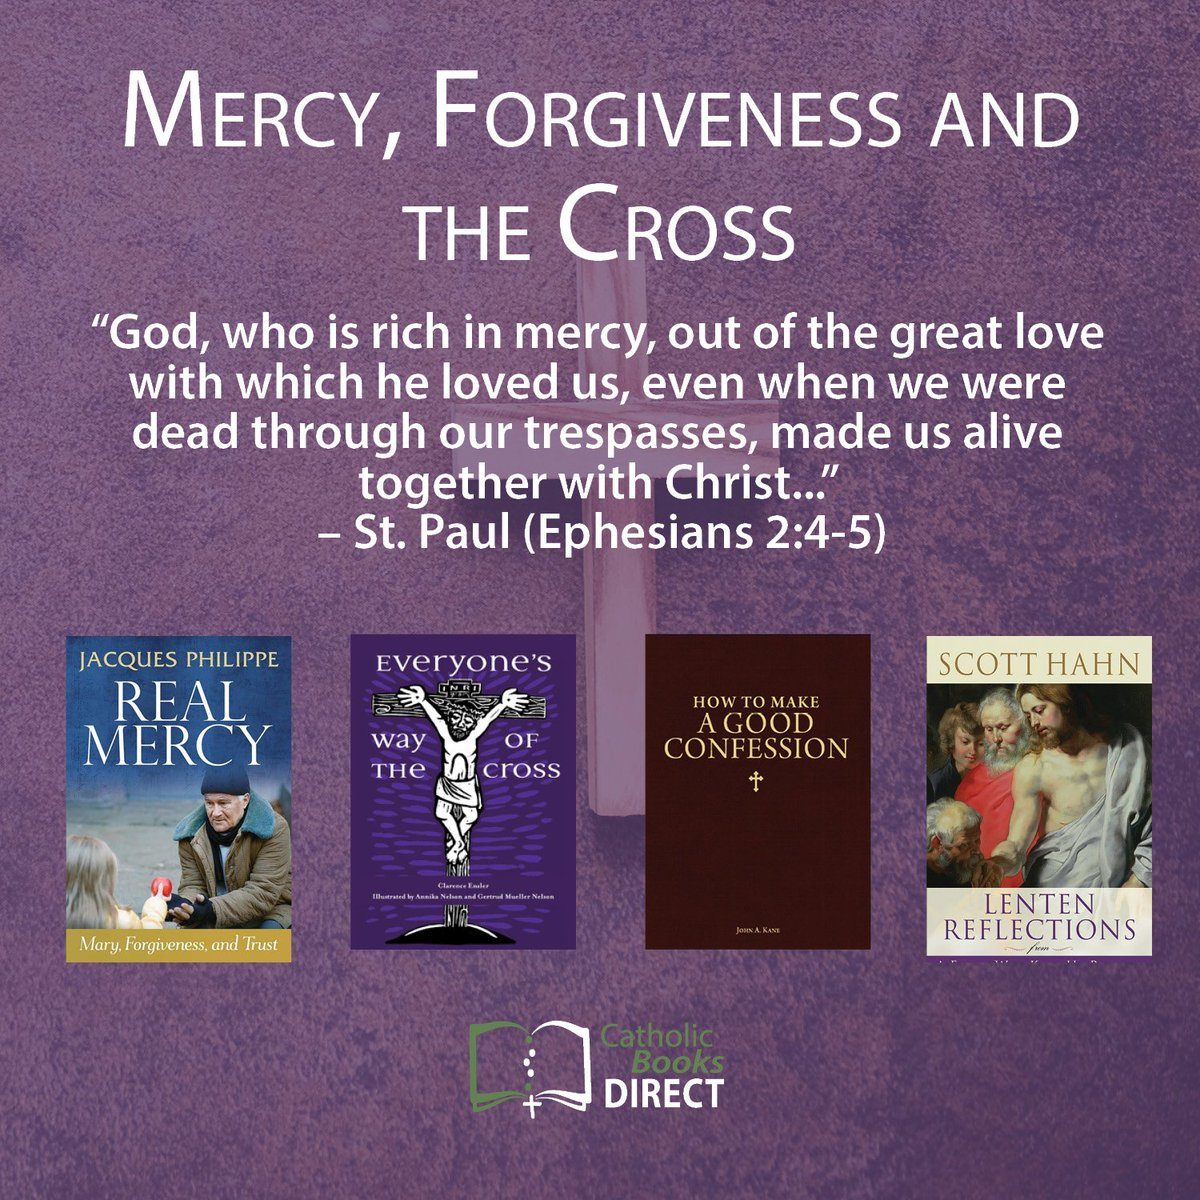 Check out our selection of books on forgiveness, mercy and the Cross as we journey closer to Good Friday. #Lent #Catholic- https://mailchi.mp/38c795a271a8/lent-challenge-854093…